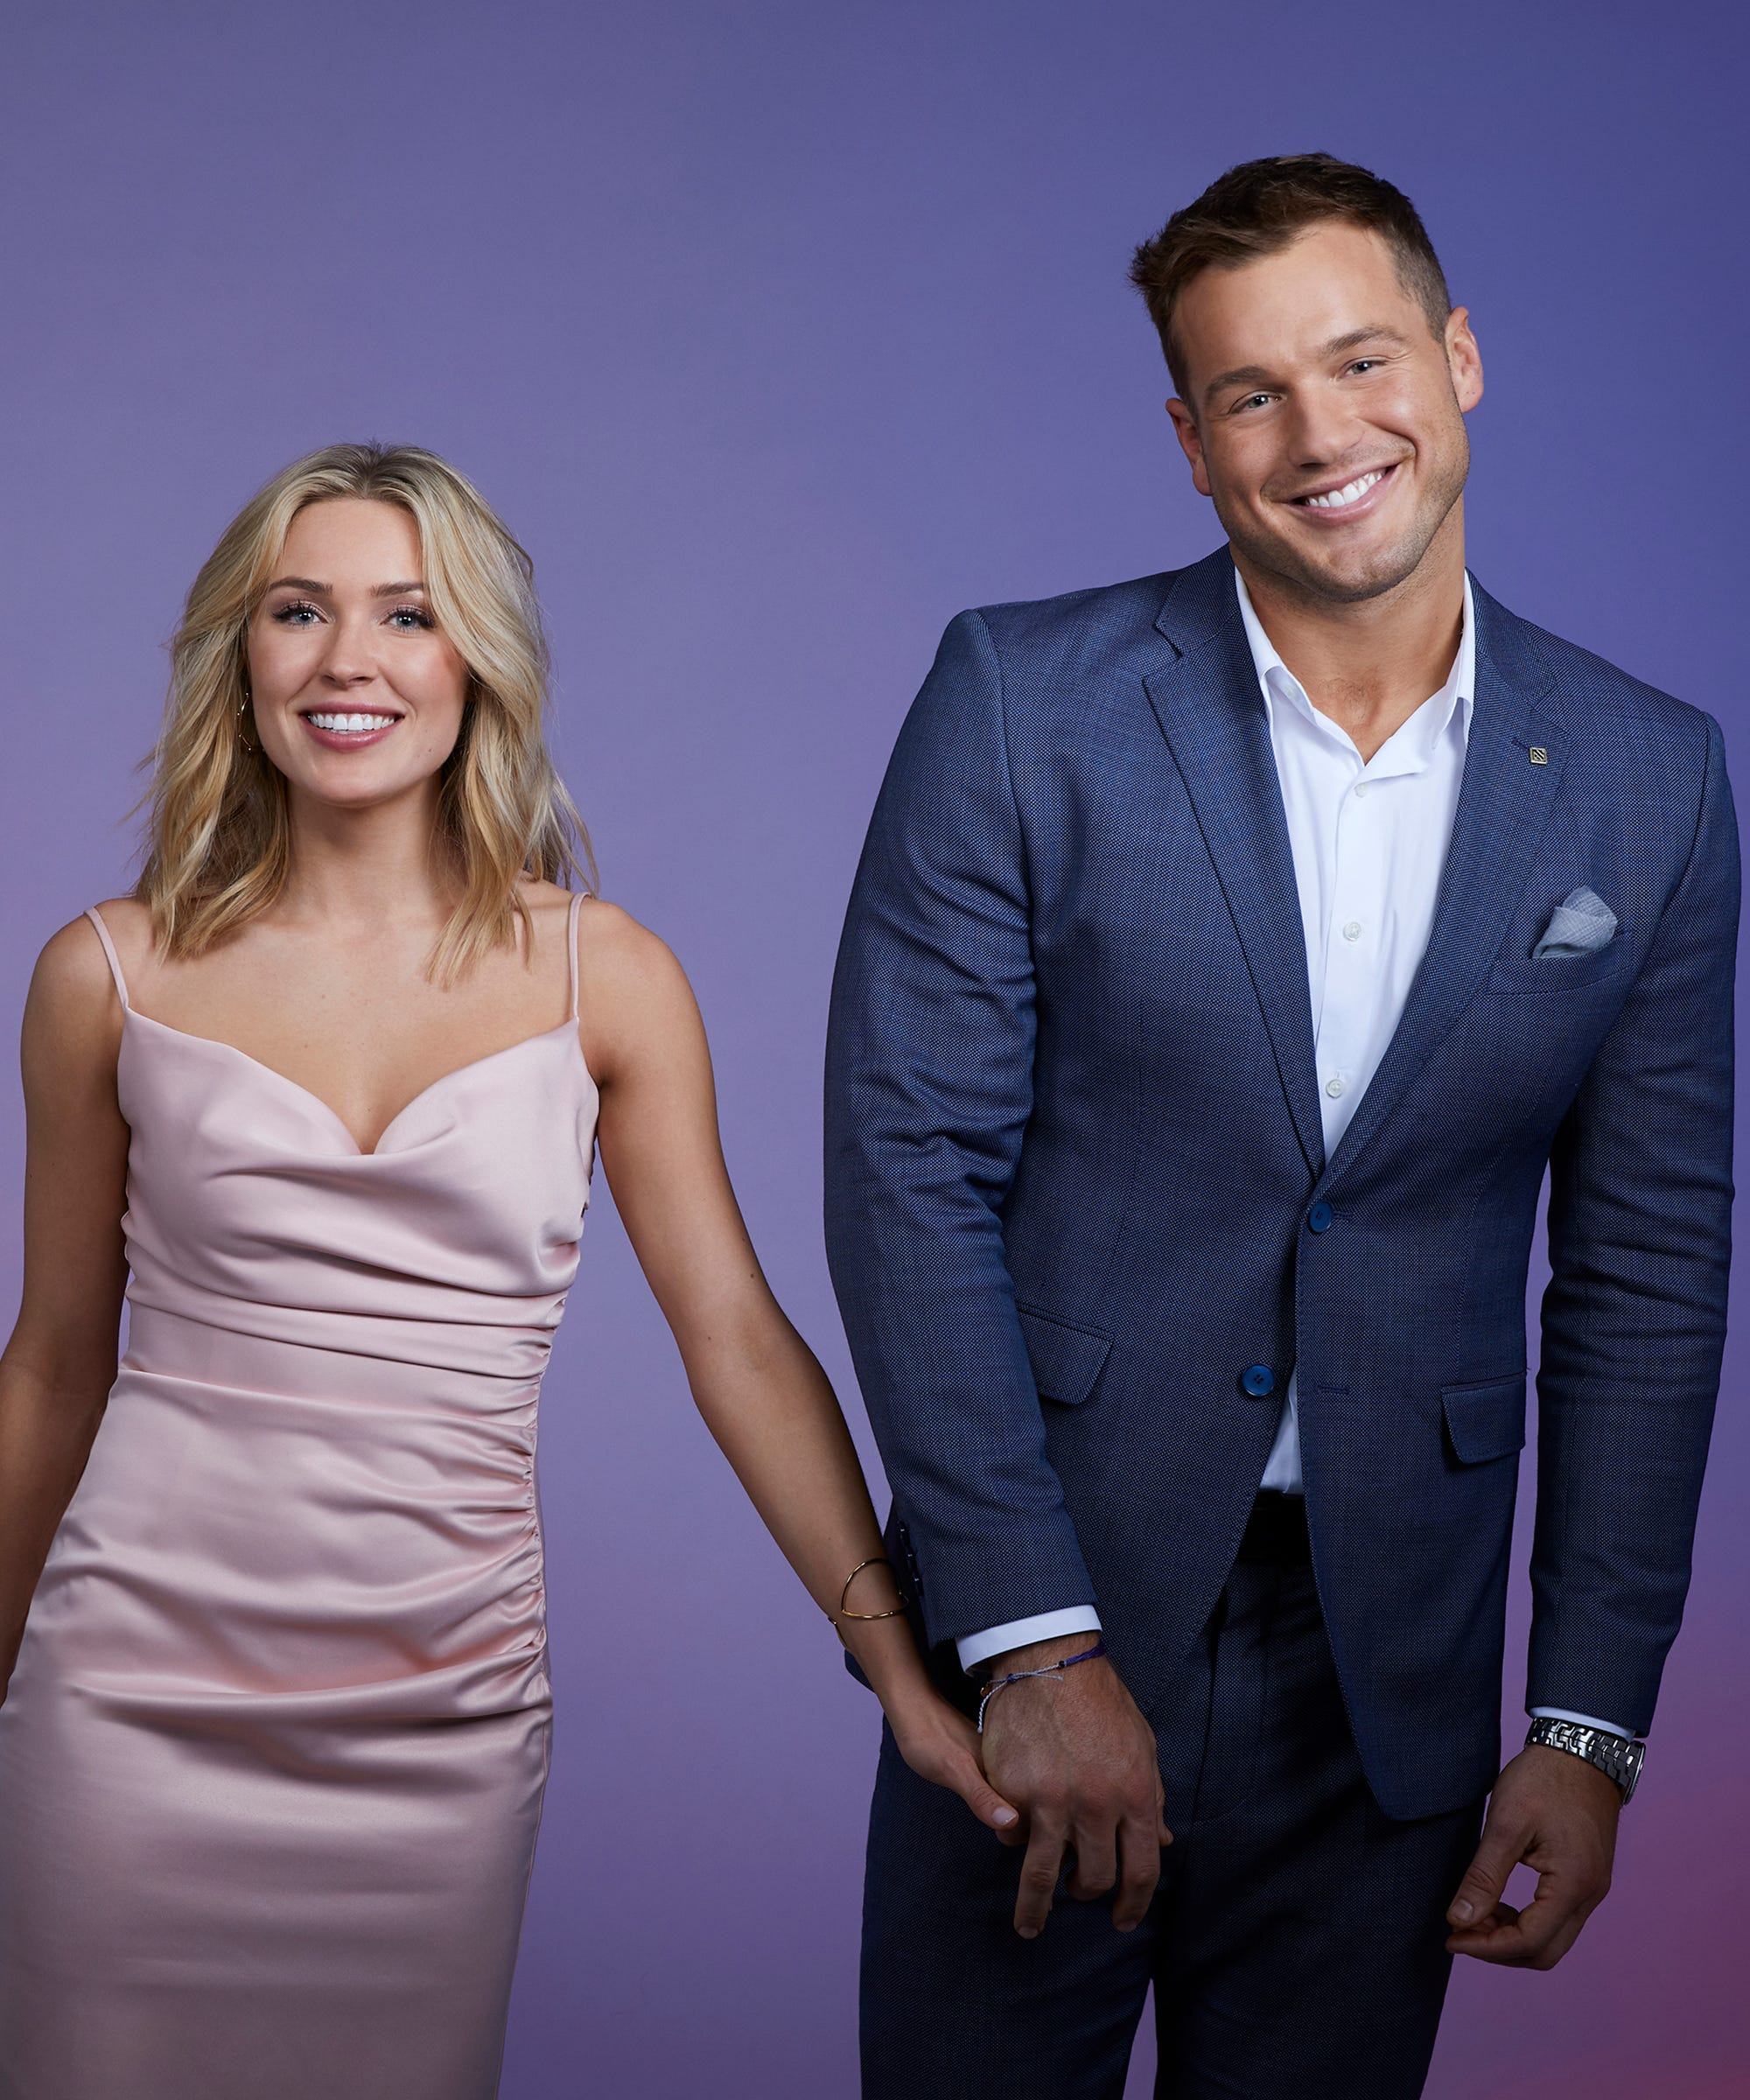 Colton, Cassie & Former Girlfriend Caelynn Are All Living In The Same Apartment Complex